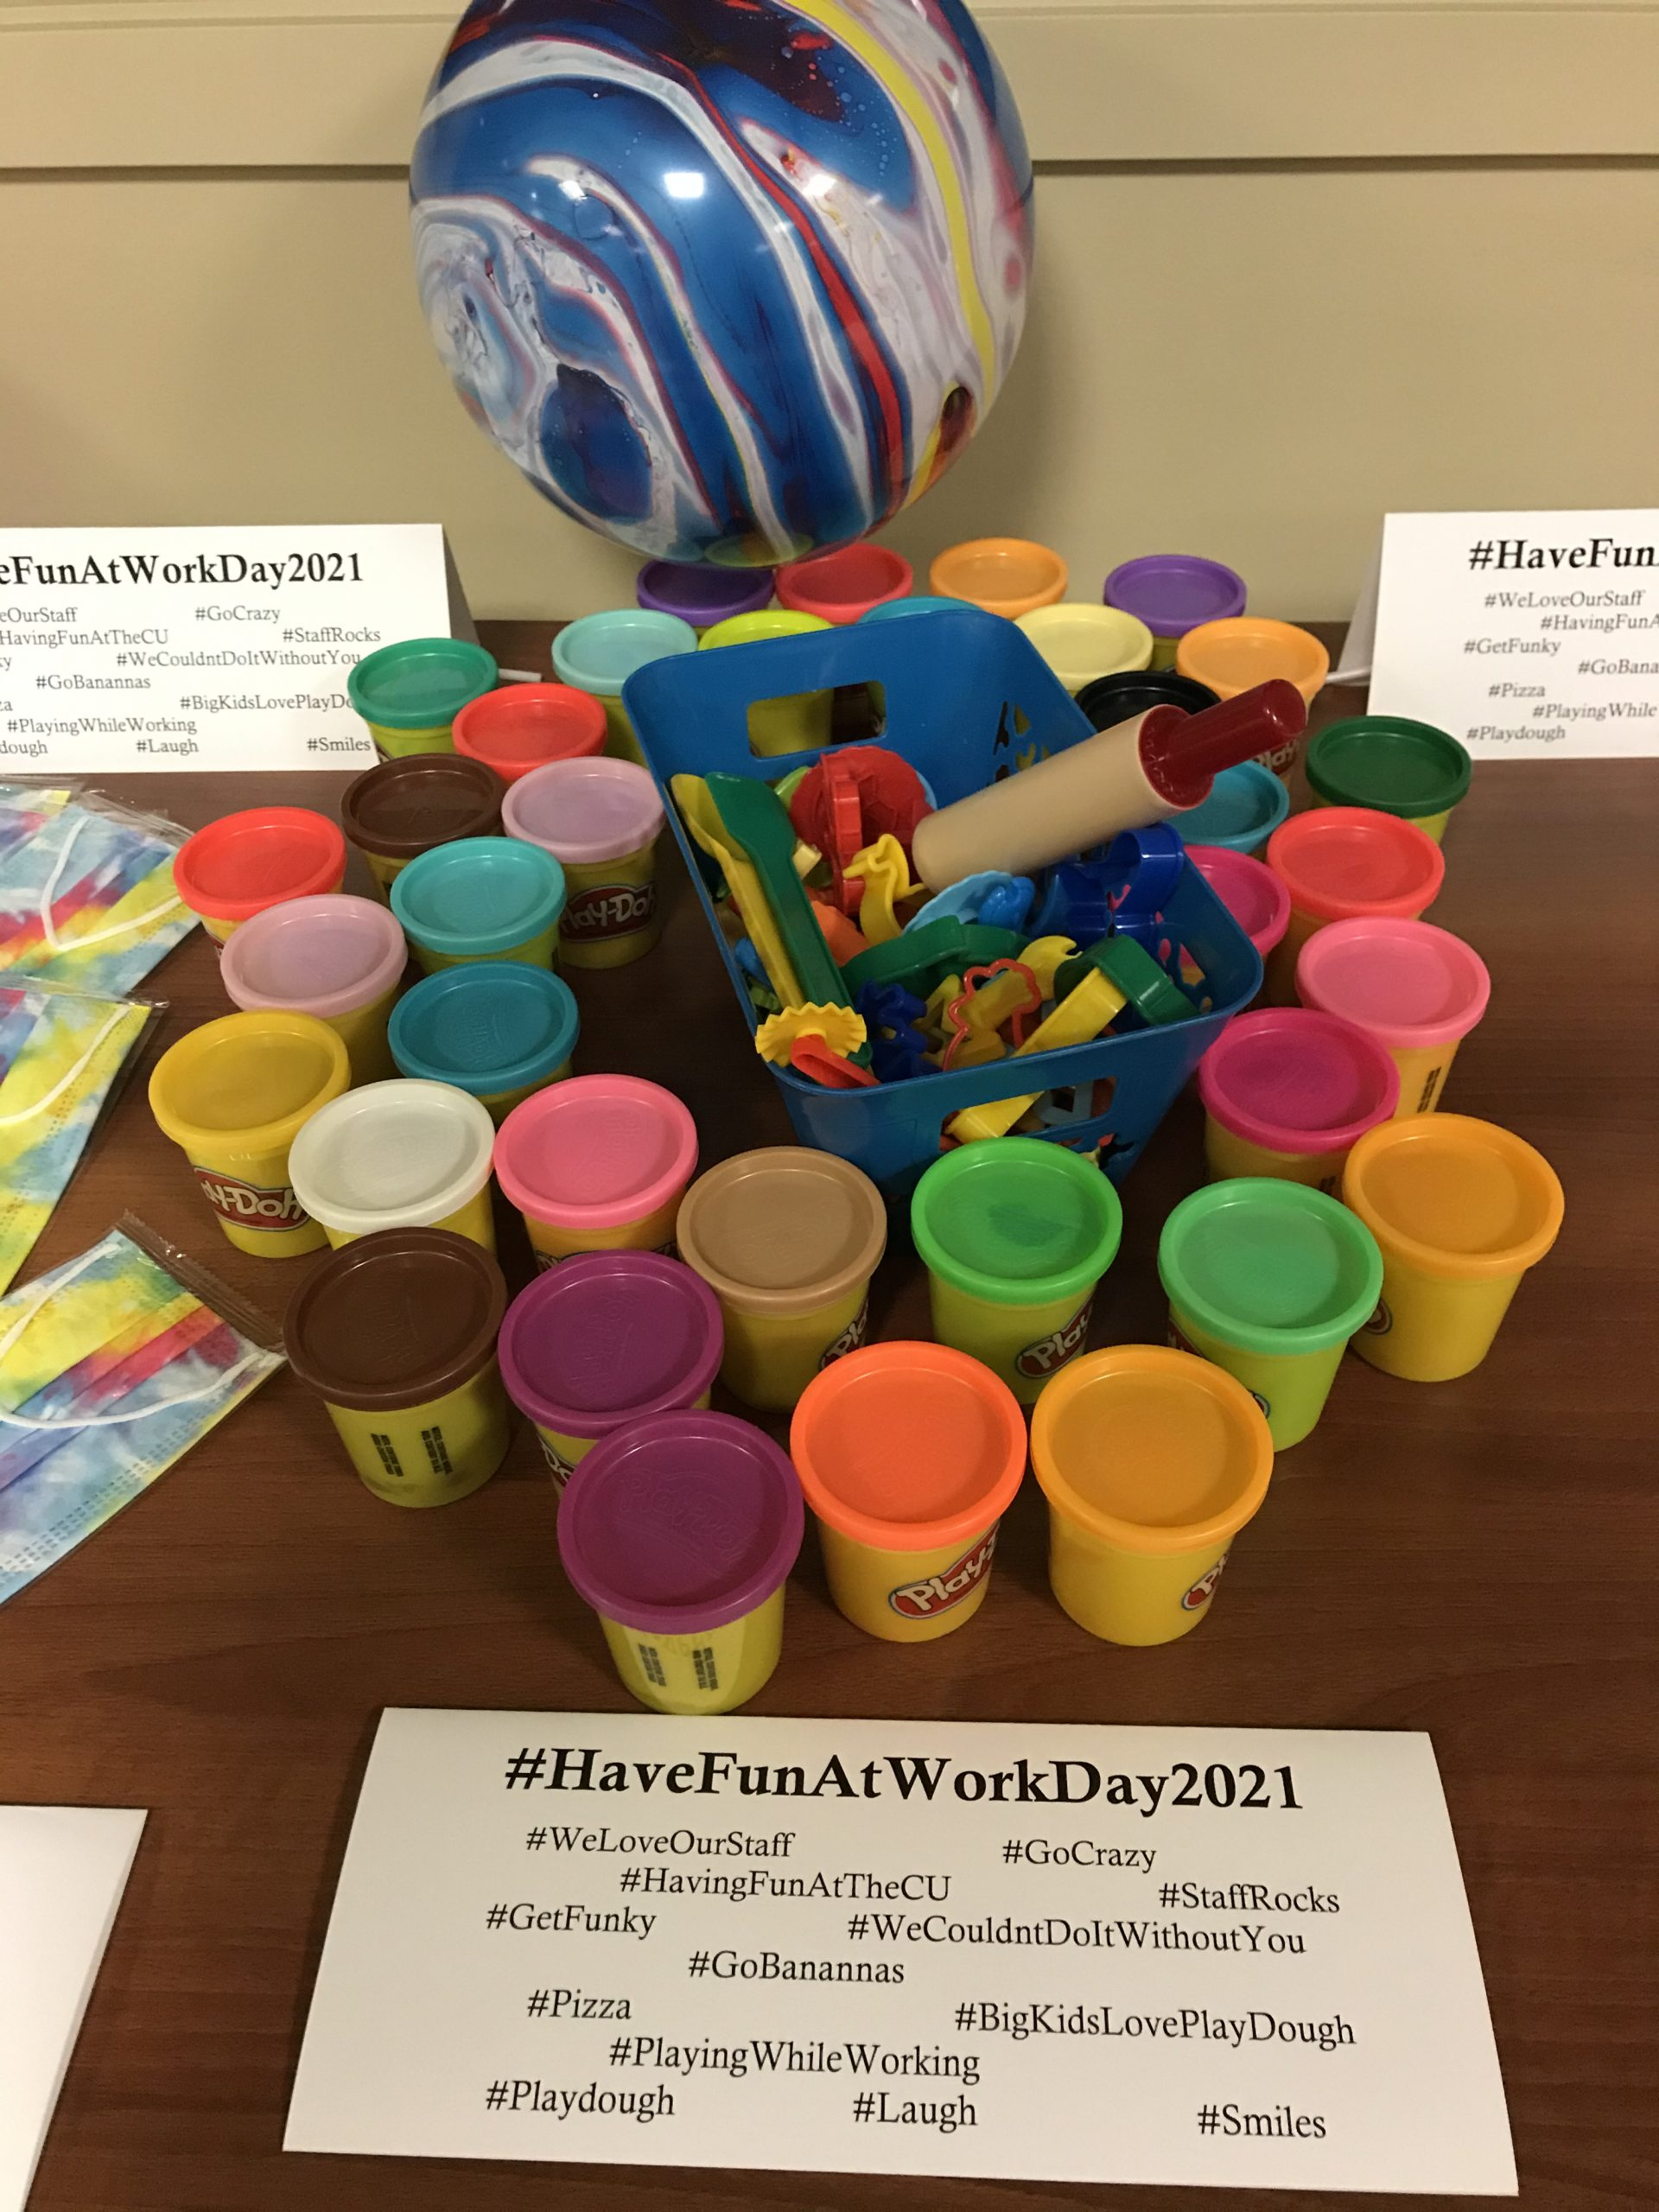 Play-doh, masks, and balloons for have fun at work day